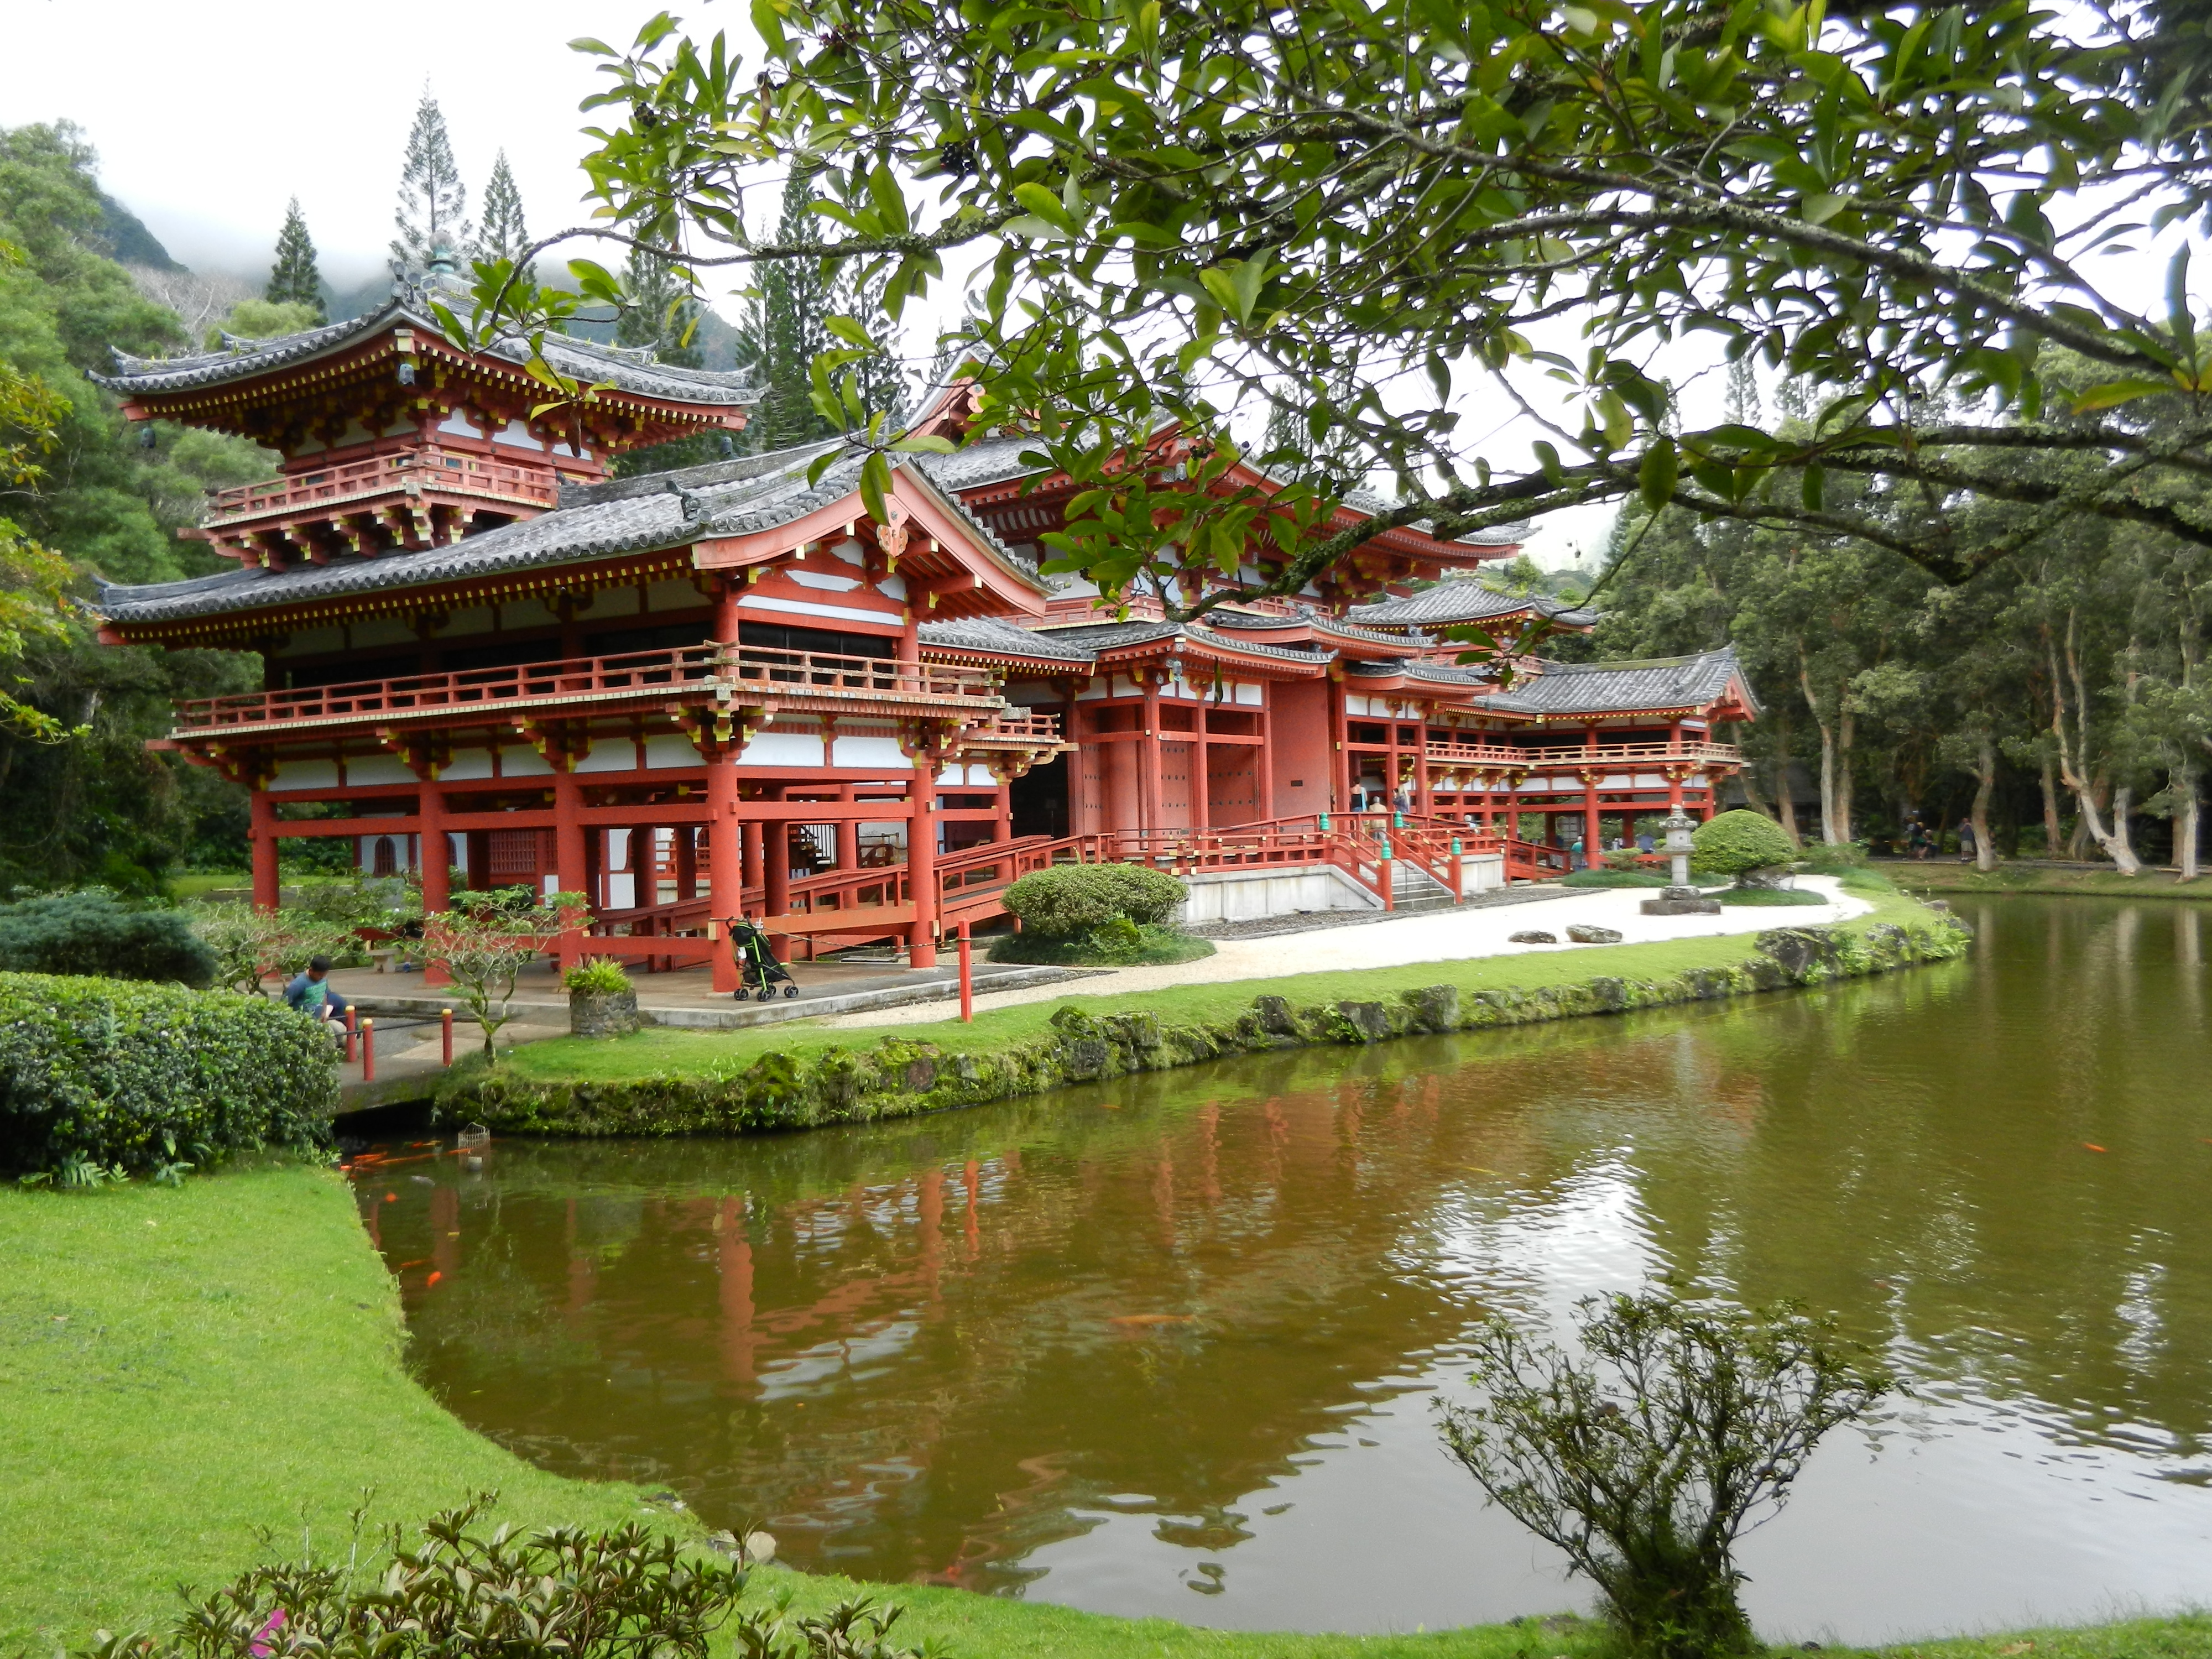 Japanese style temple in the background with a green pond and trees in the foreground